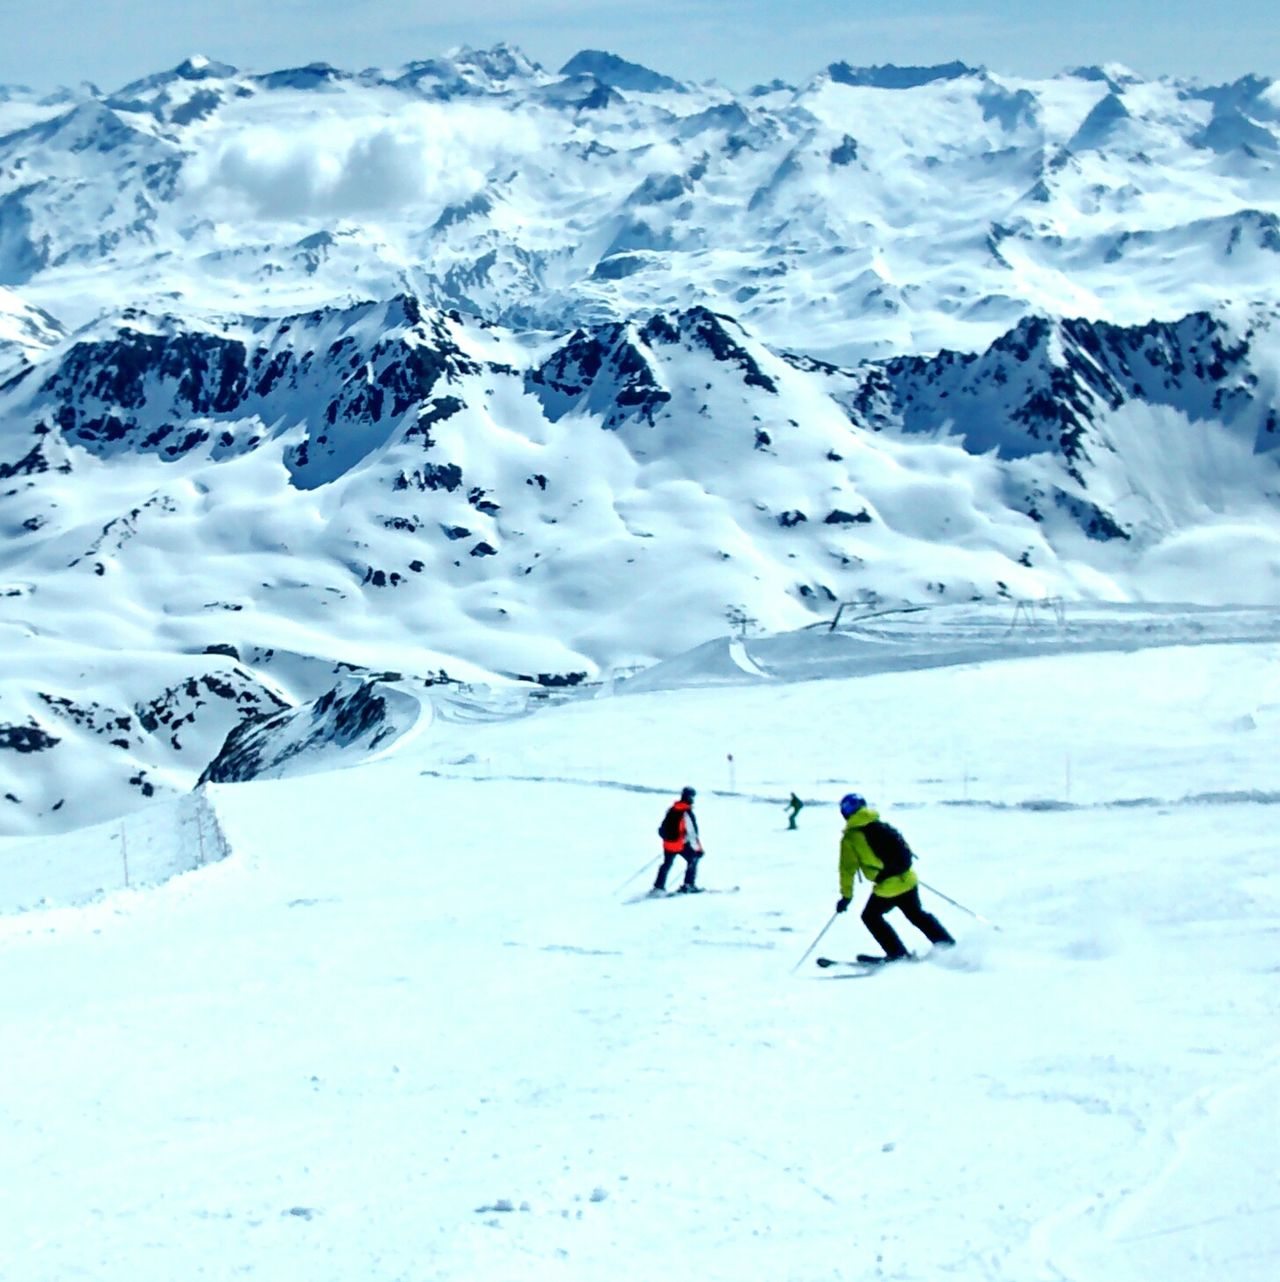 Skiing Mountains Mountain Holiday France Eye4photography  EyeEm Best Shots Snow Cold Landscape